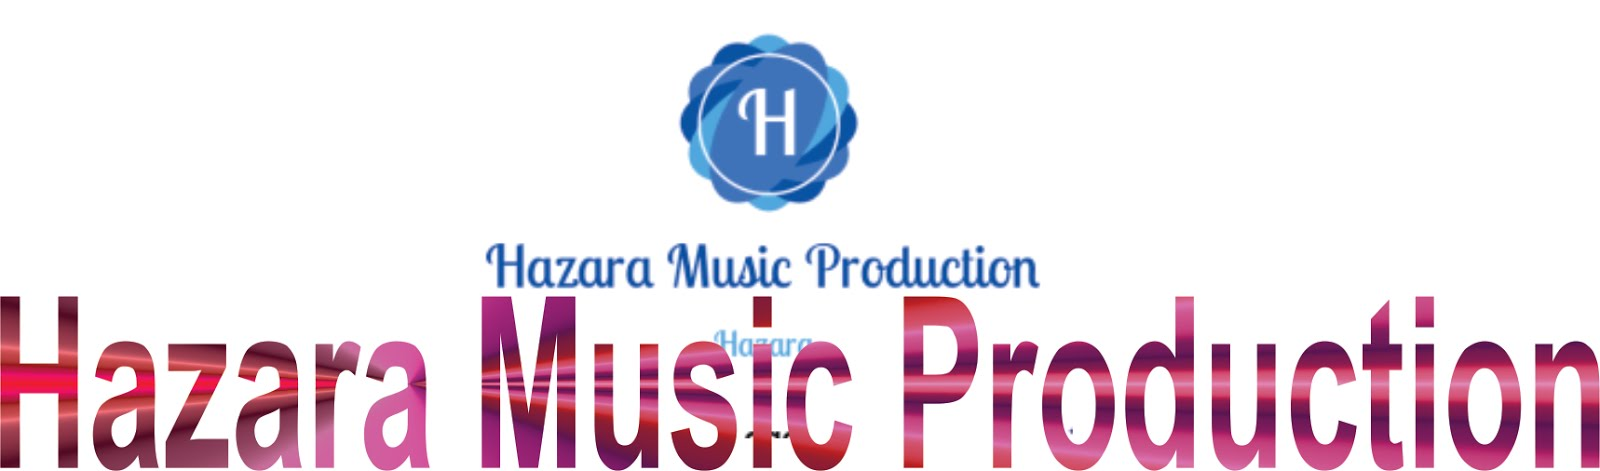 Hazara Music Production